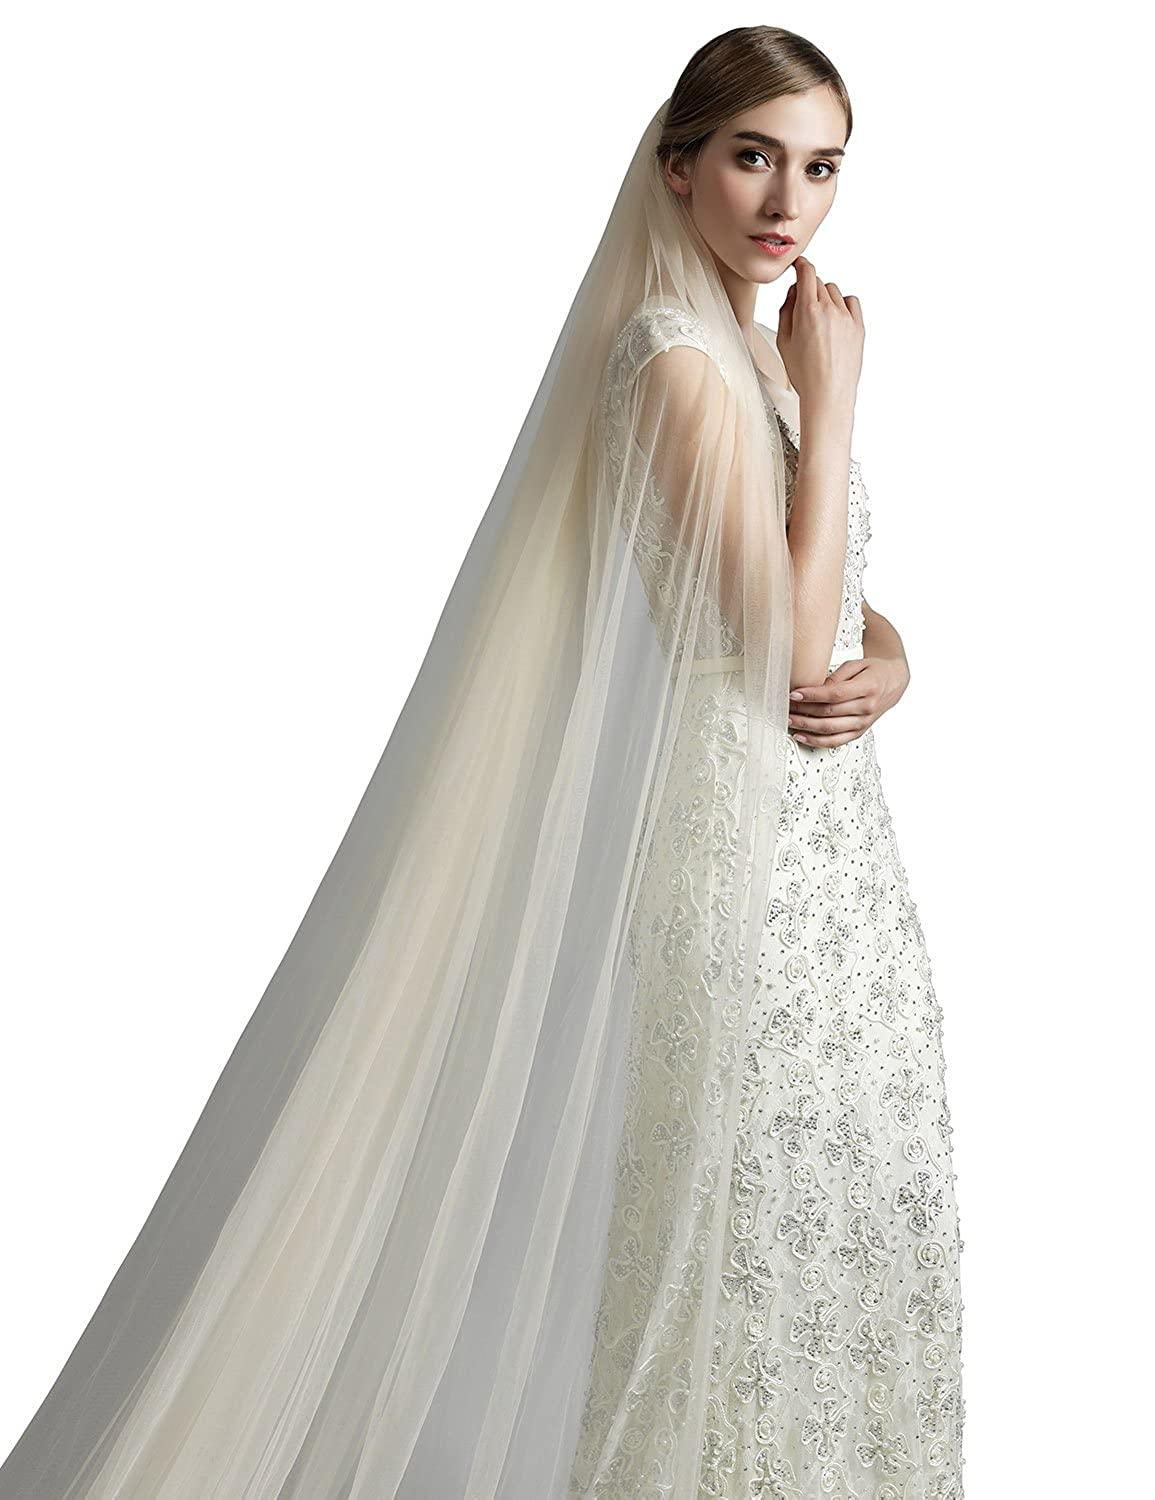 Sarahbridal Womens Soft Tulle Chapel Cathedral Bridal Veils With Comb Long Wedding Veil 11059